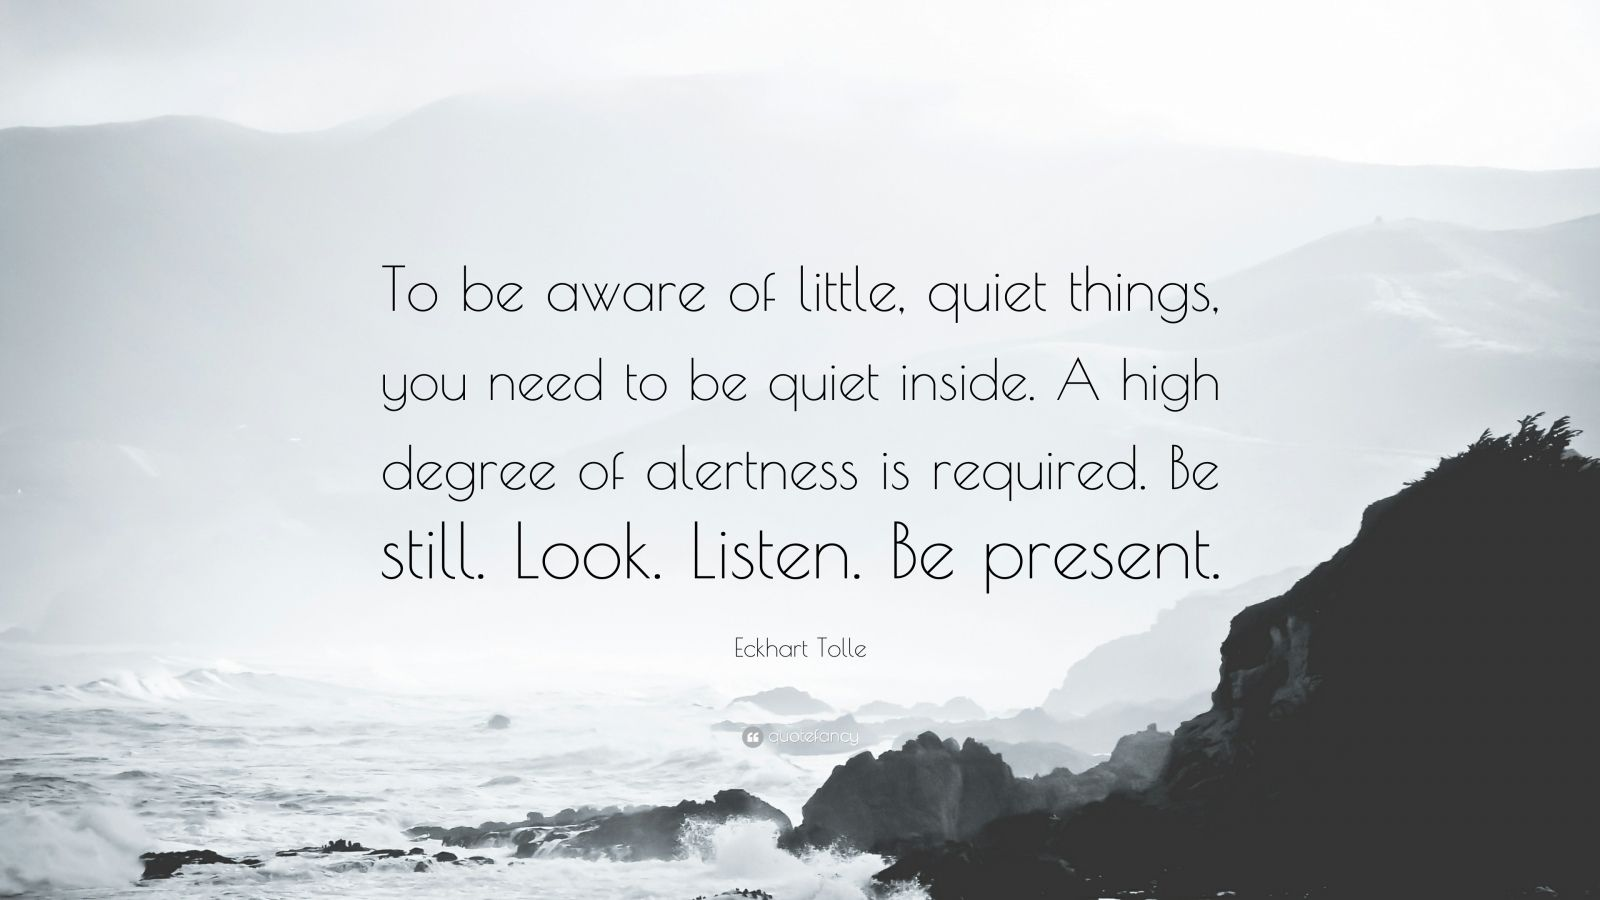 """Eckhart Tolle Quote: """"To be aware of little, quiet things, you need to be quiet inside. A high degree of alertness is required. Be still. Look. Listen. Be present."""""""